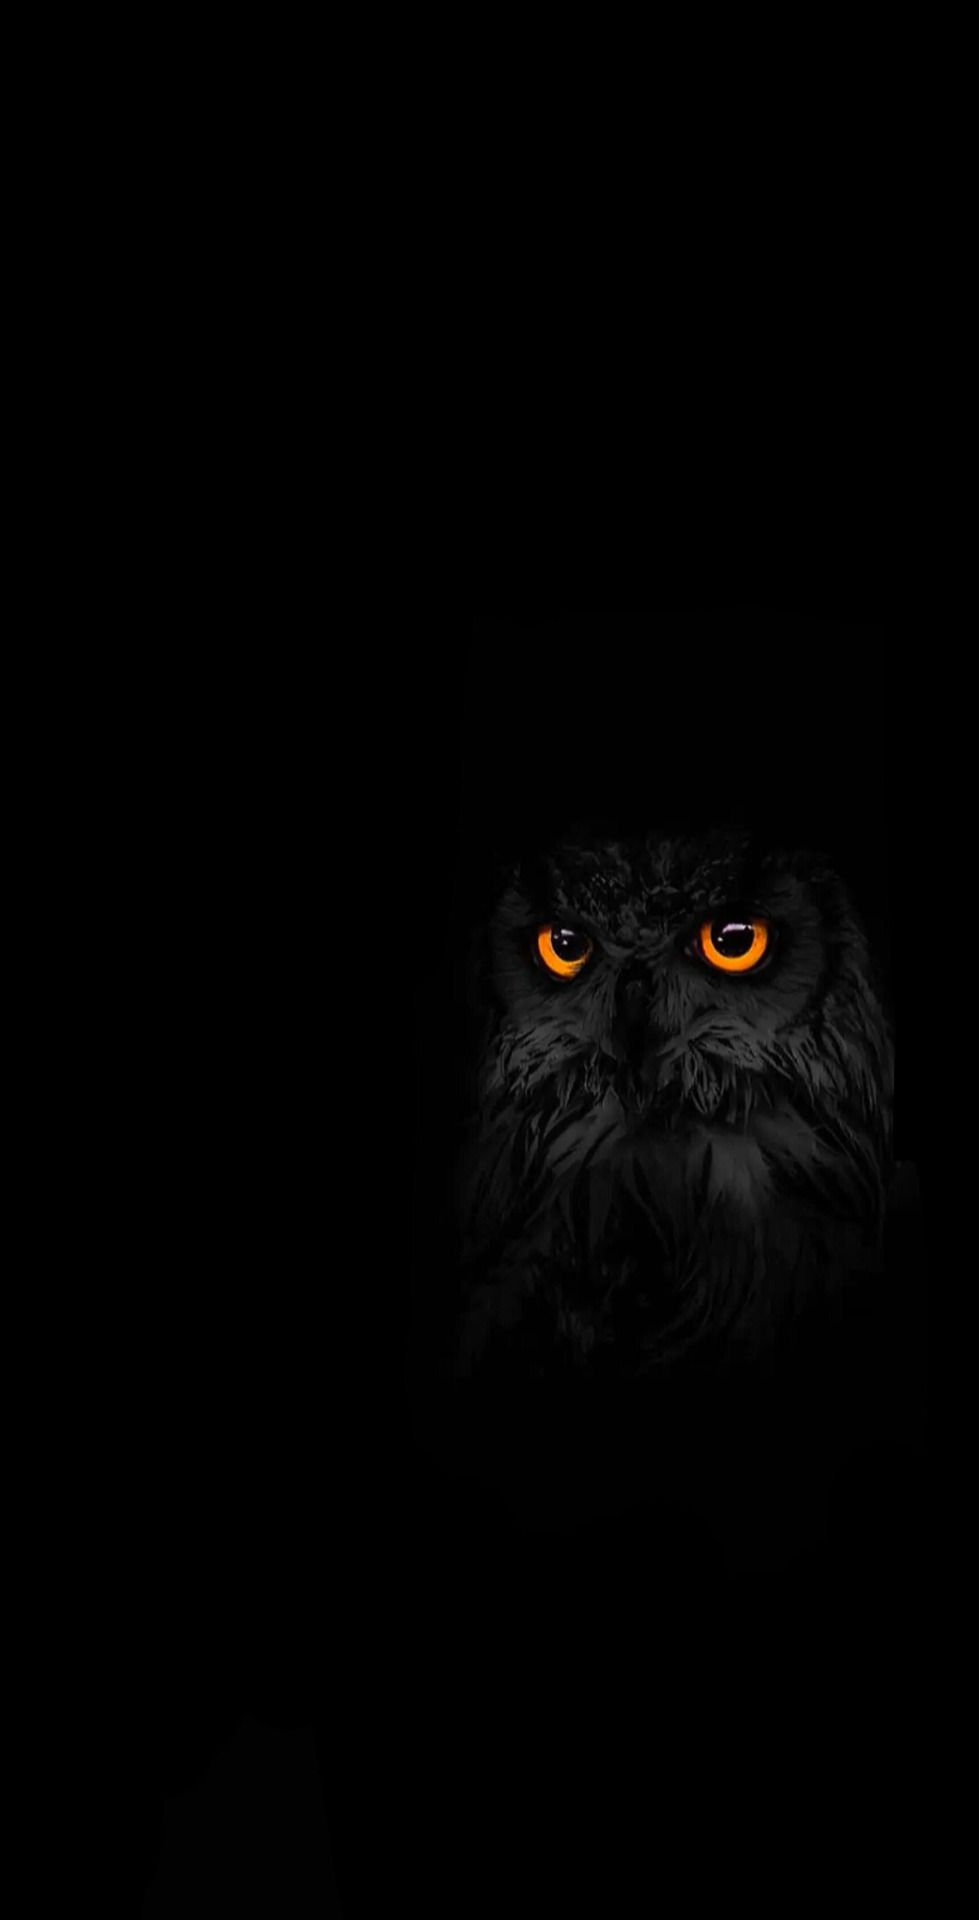 Pin By Vad On Animals Friends Owl Artwork Owl Wallpaper Owl Wallpaper Iphone